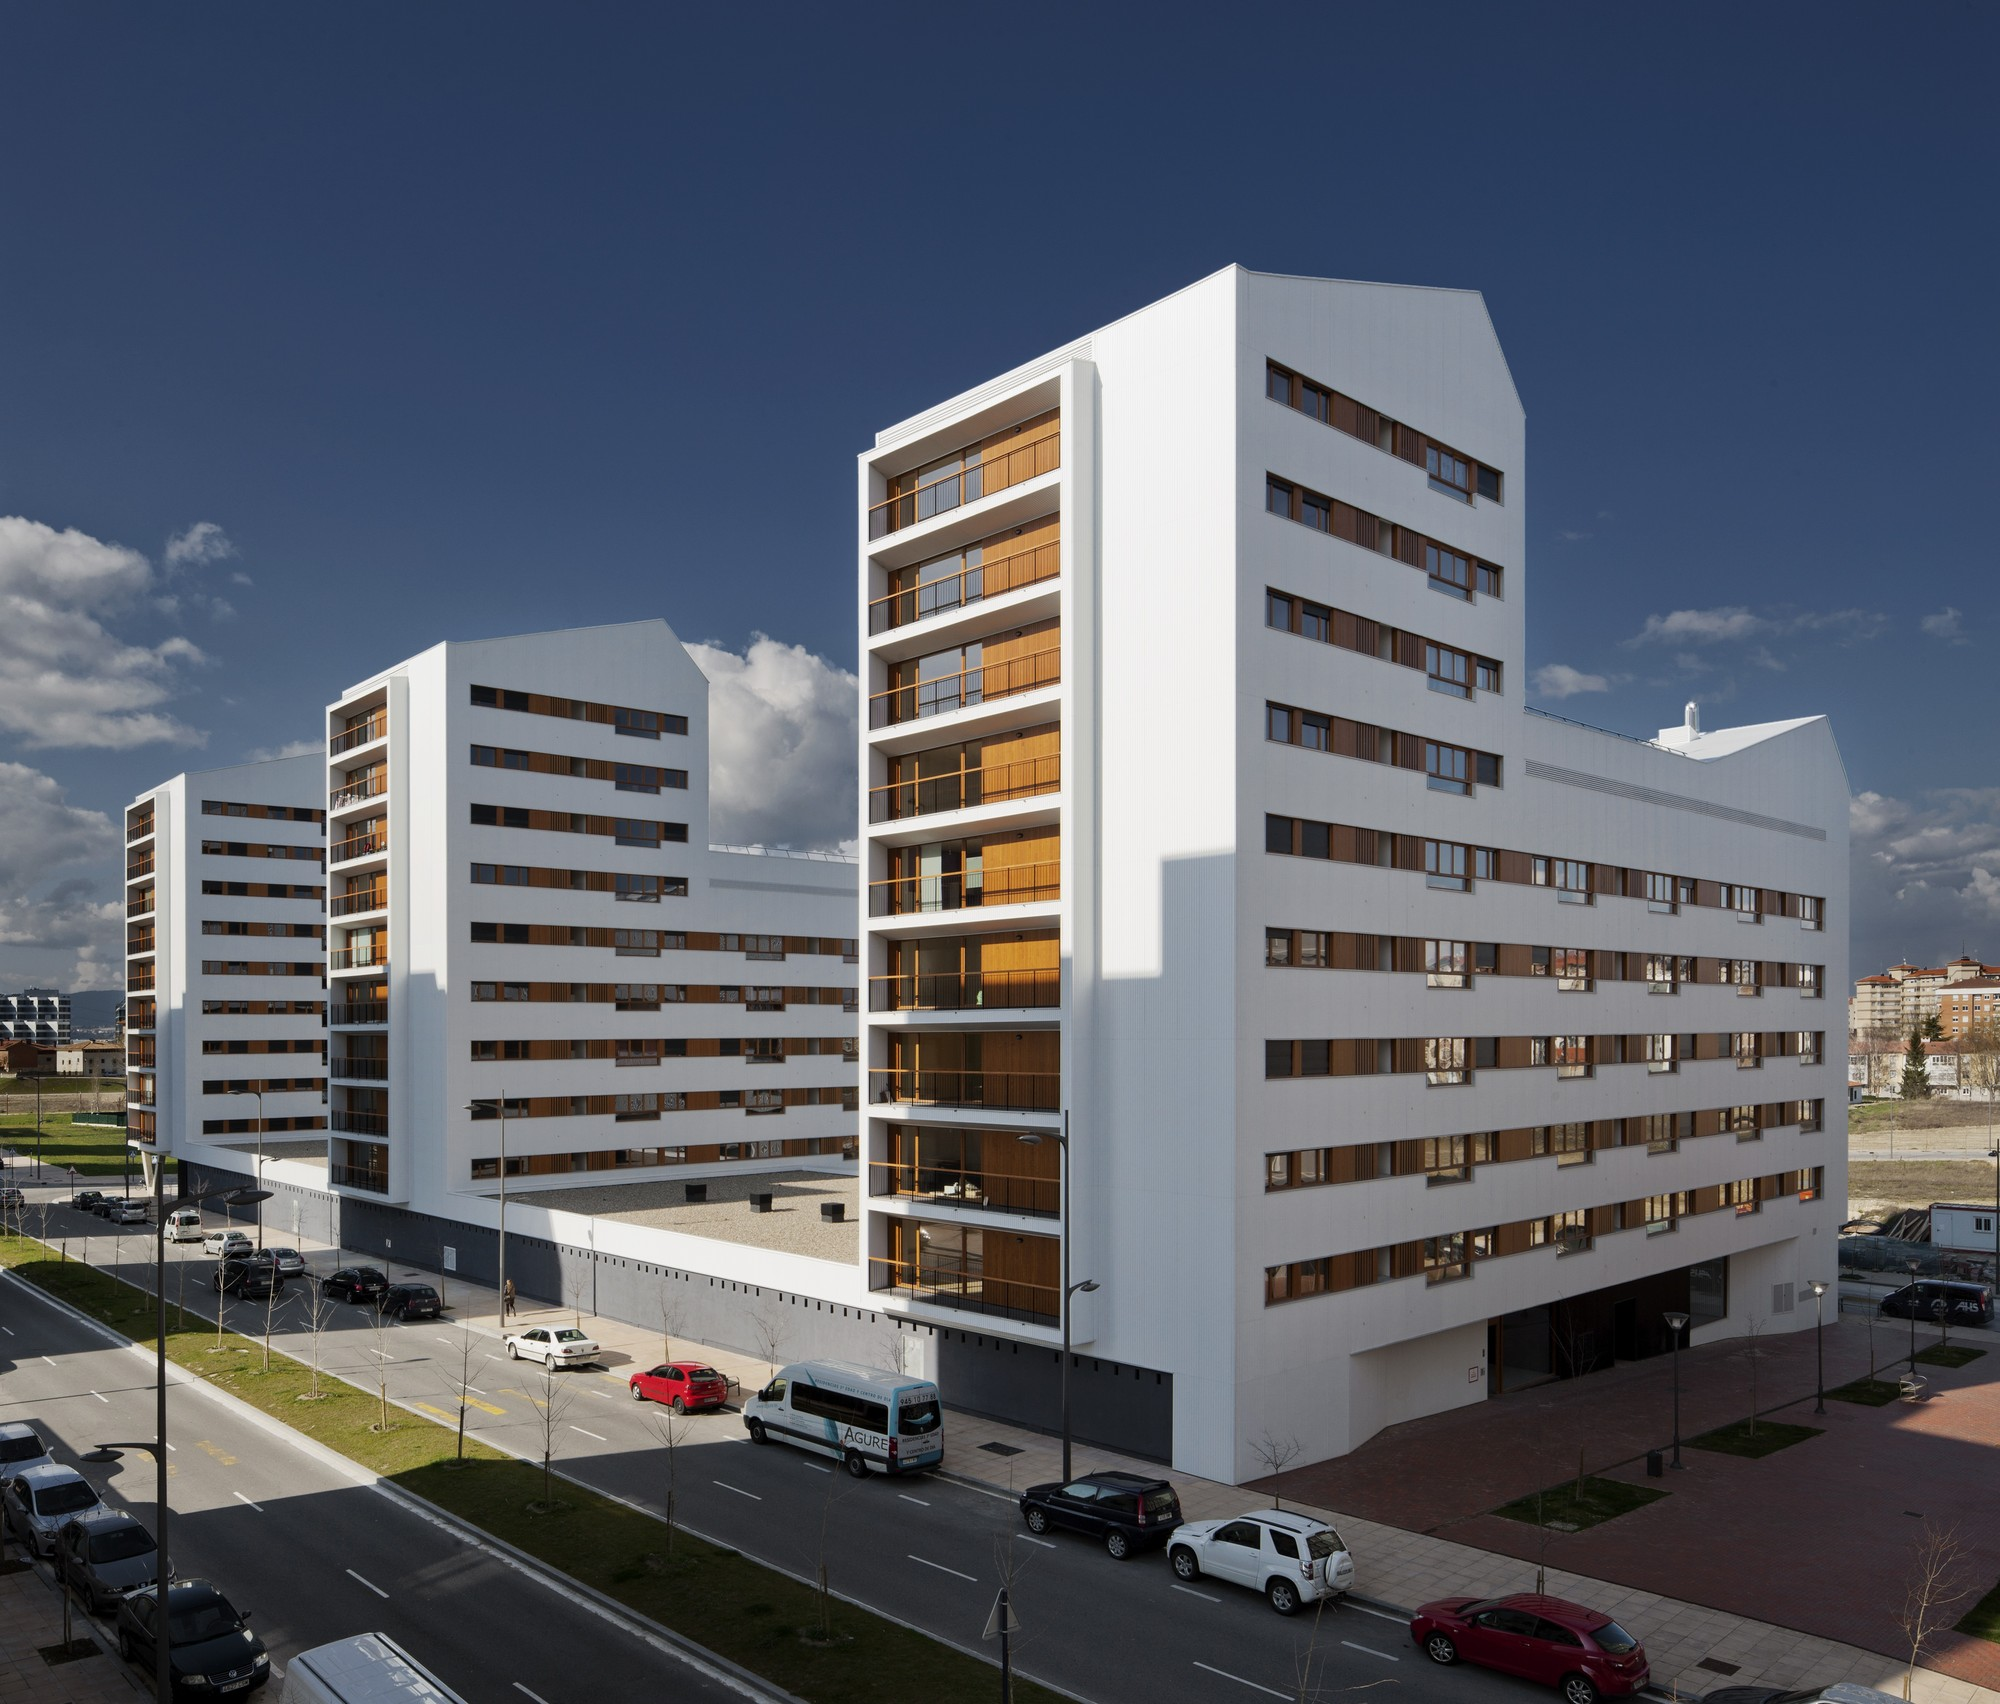 New group of council flats in Vitoria-Gasteiz / ACXT Arquitectos, © Aitor Ortiz